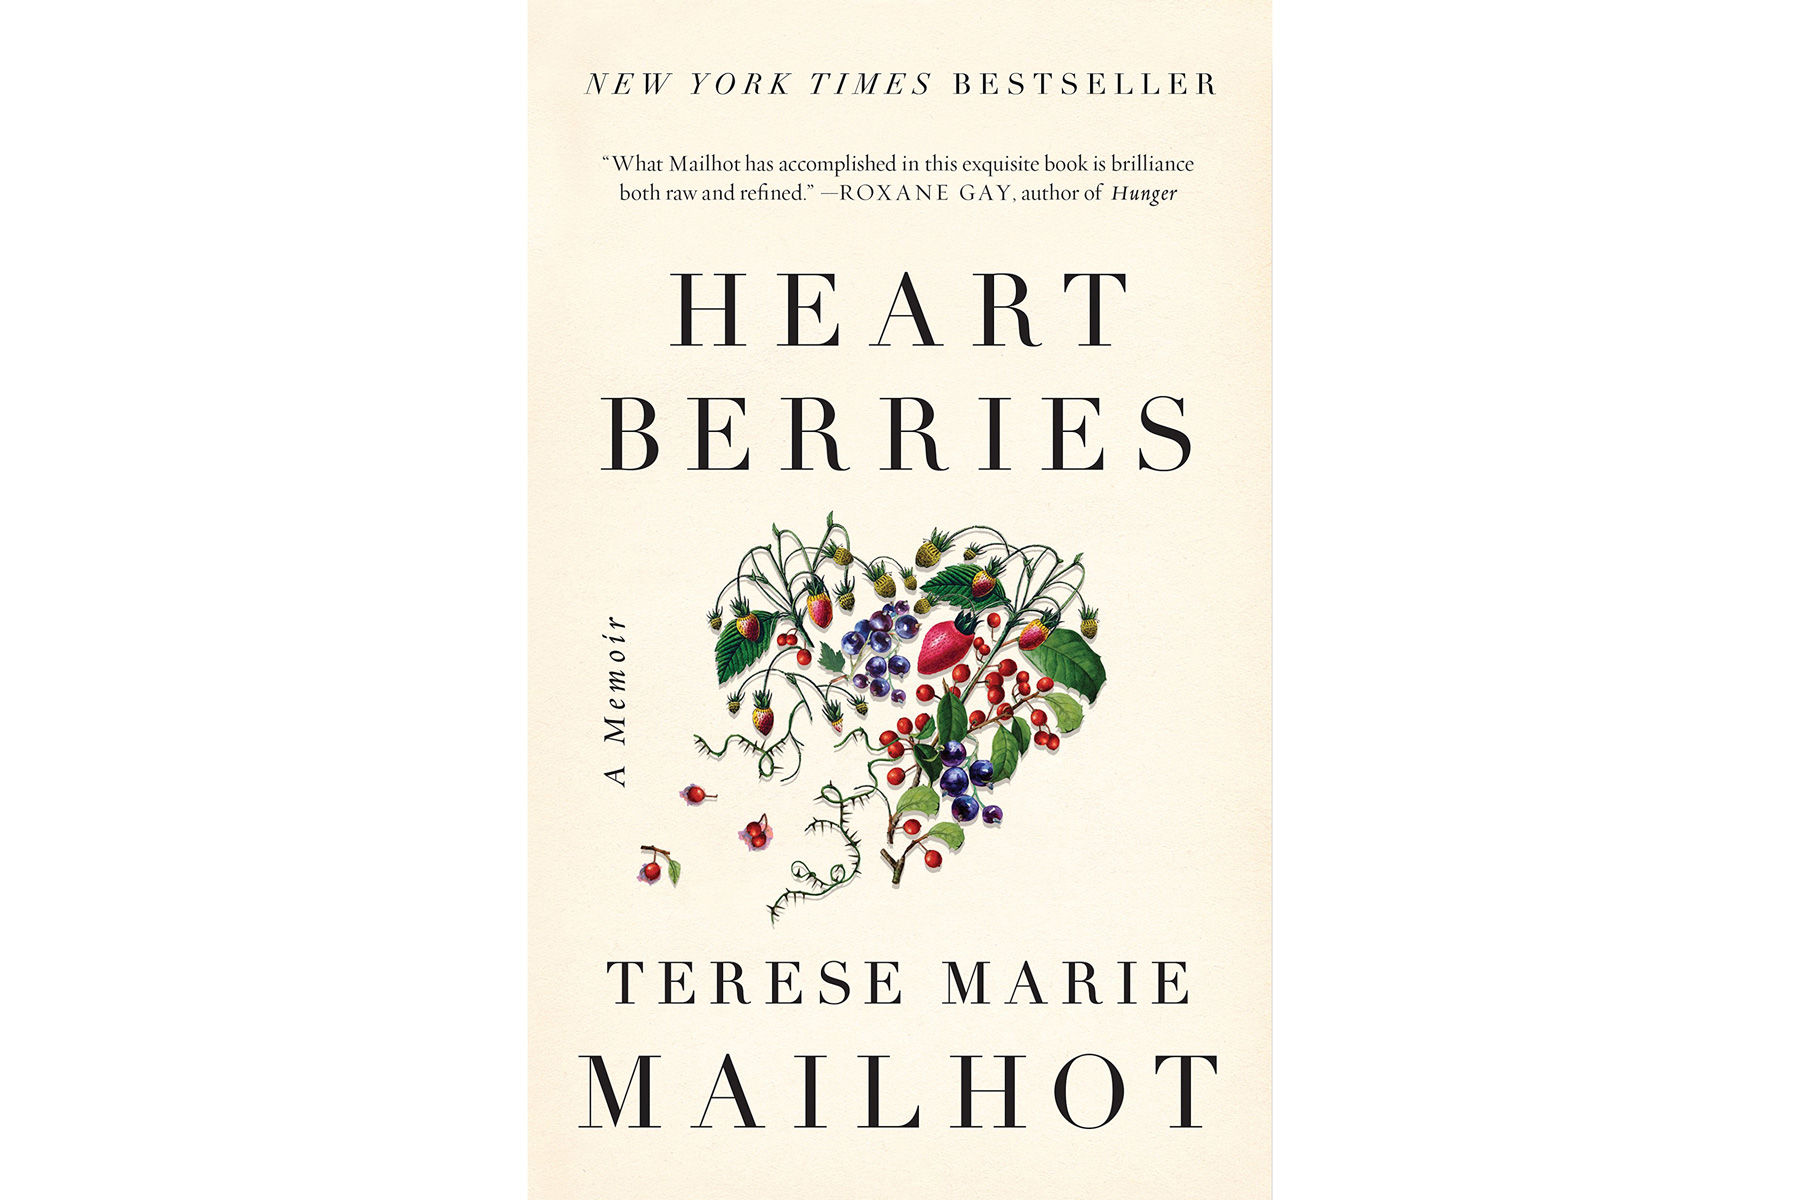 Heart Berries, by Terese Marie Mailhot